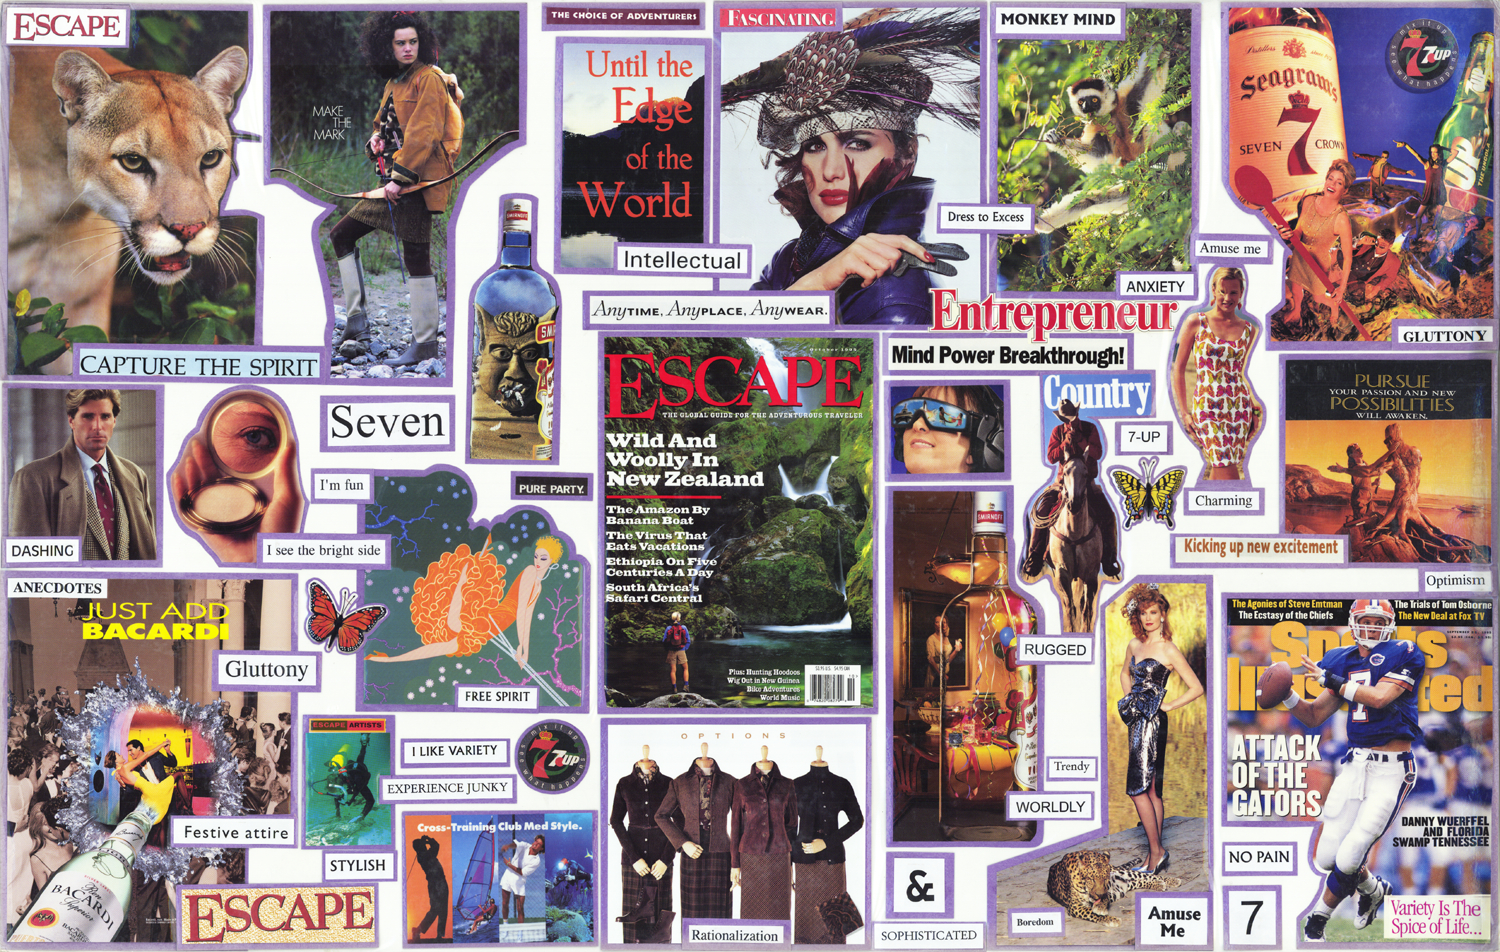 7 collage page size.jpg